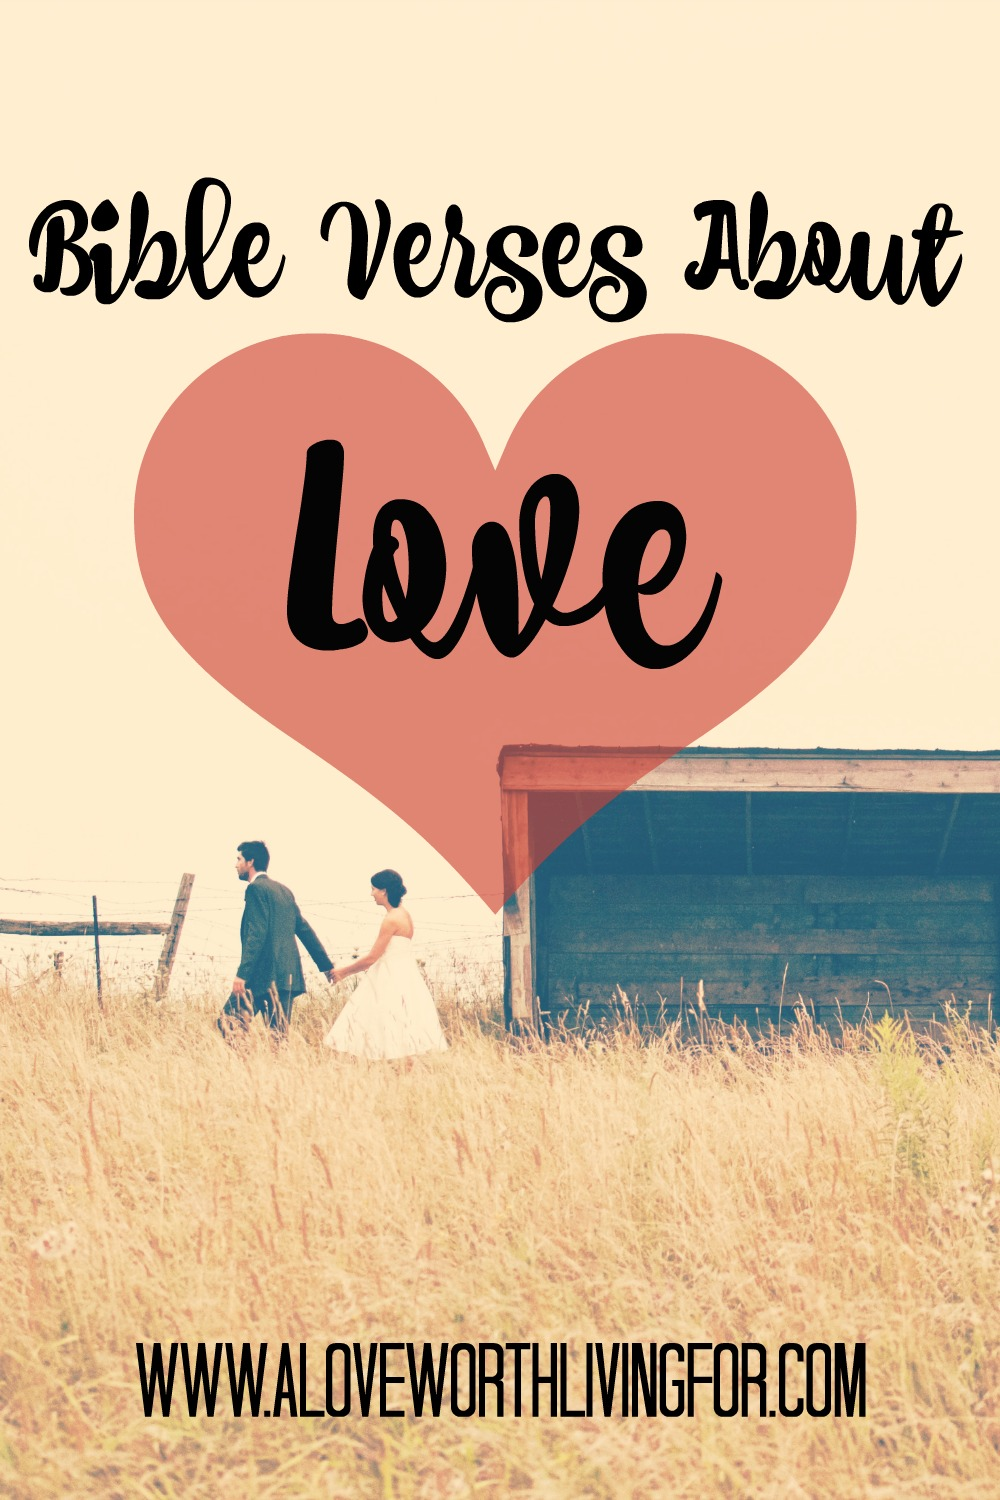 Bible Verses About Love because who doesn't want to be loved?